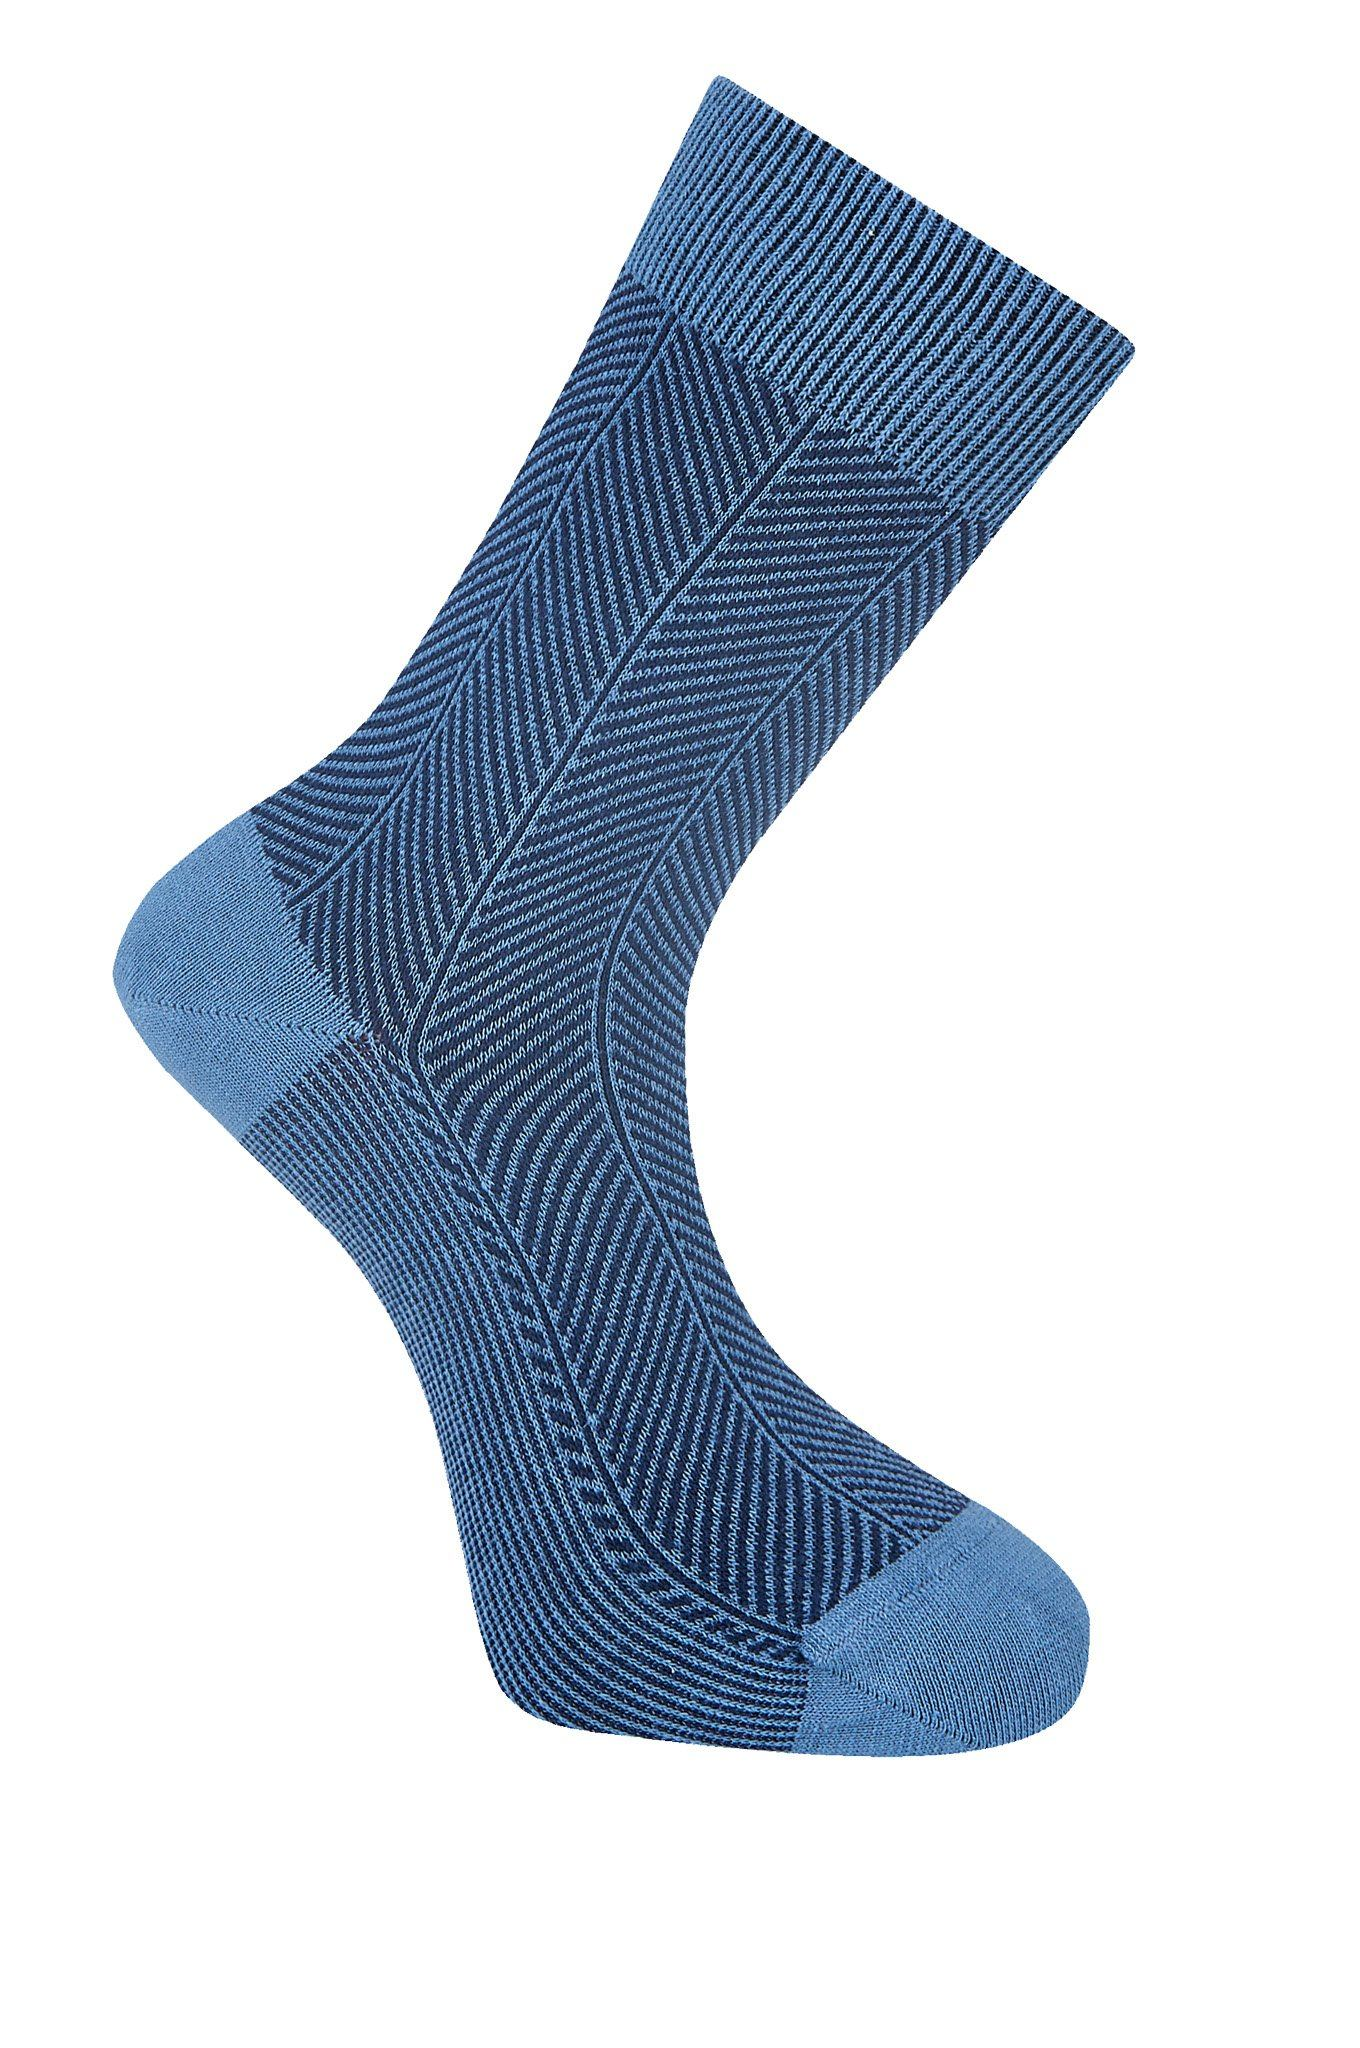 HERRINGBONE Hydron Organic Cotton Socks - Komodo Fashion